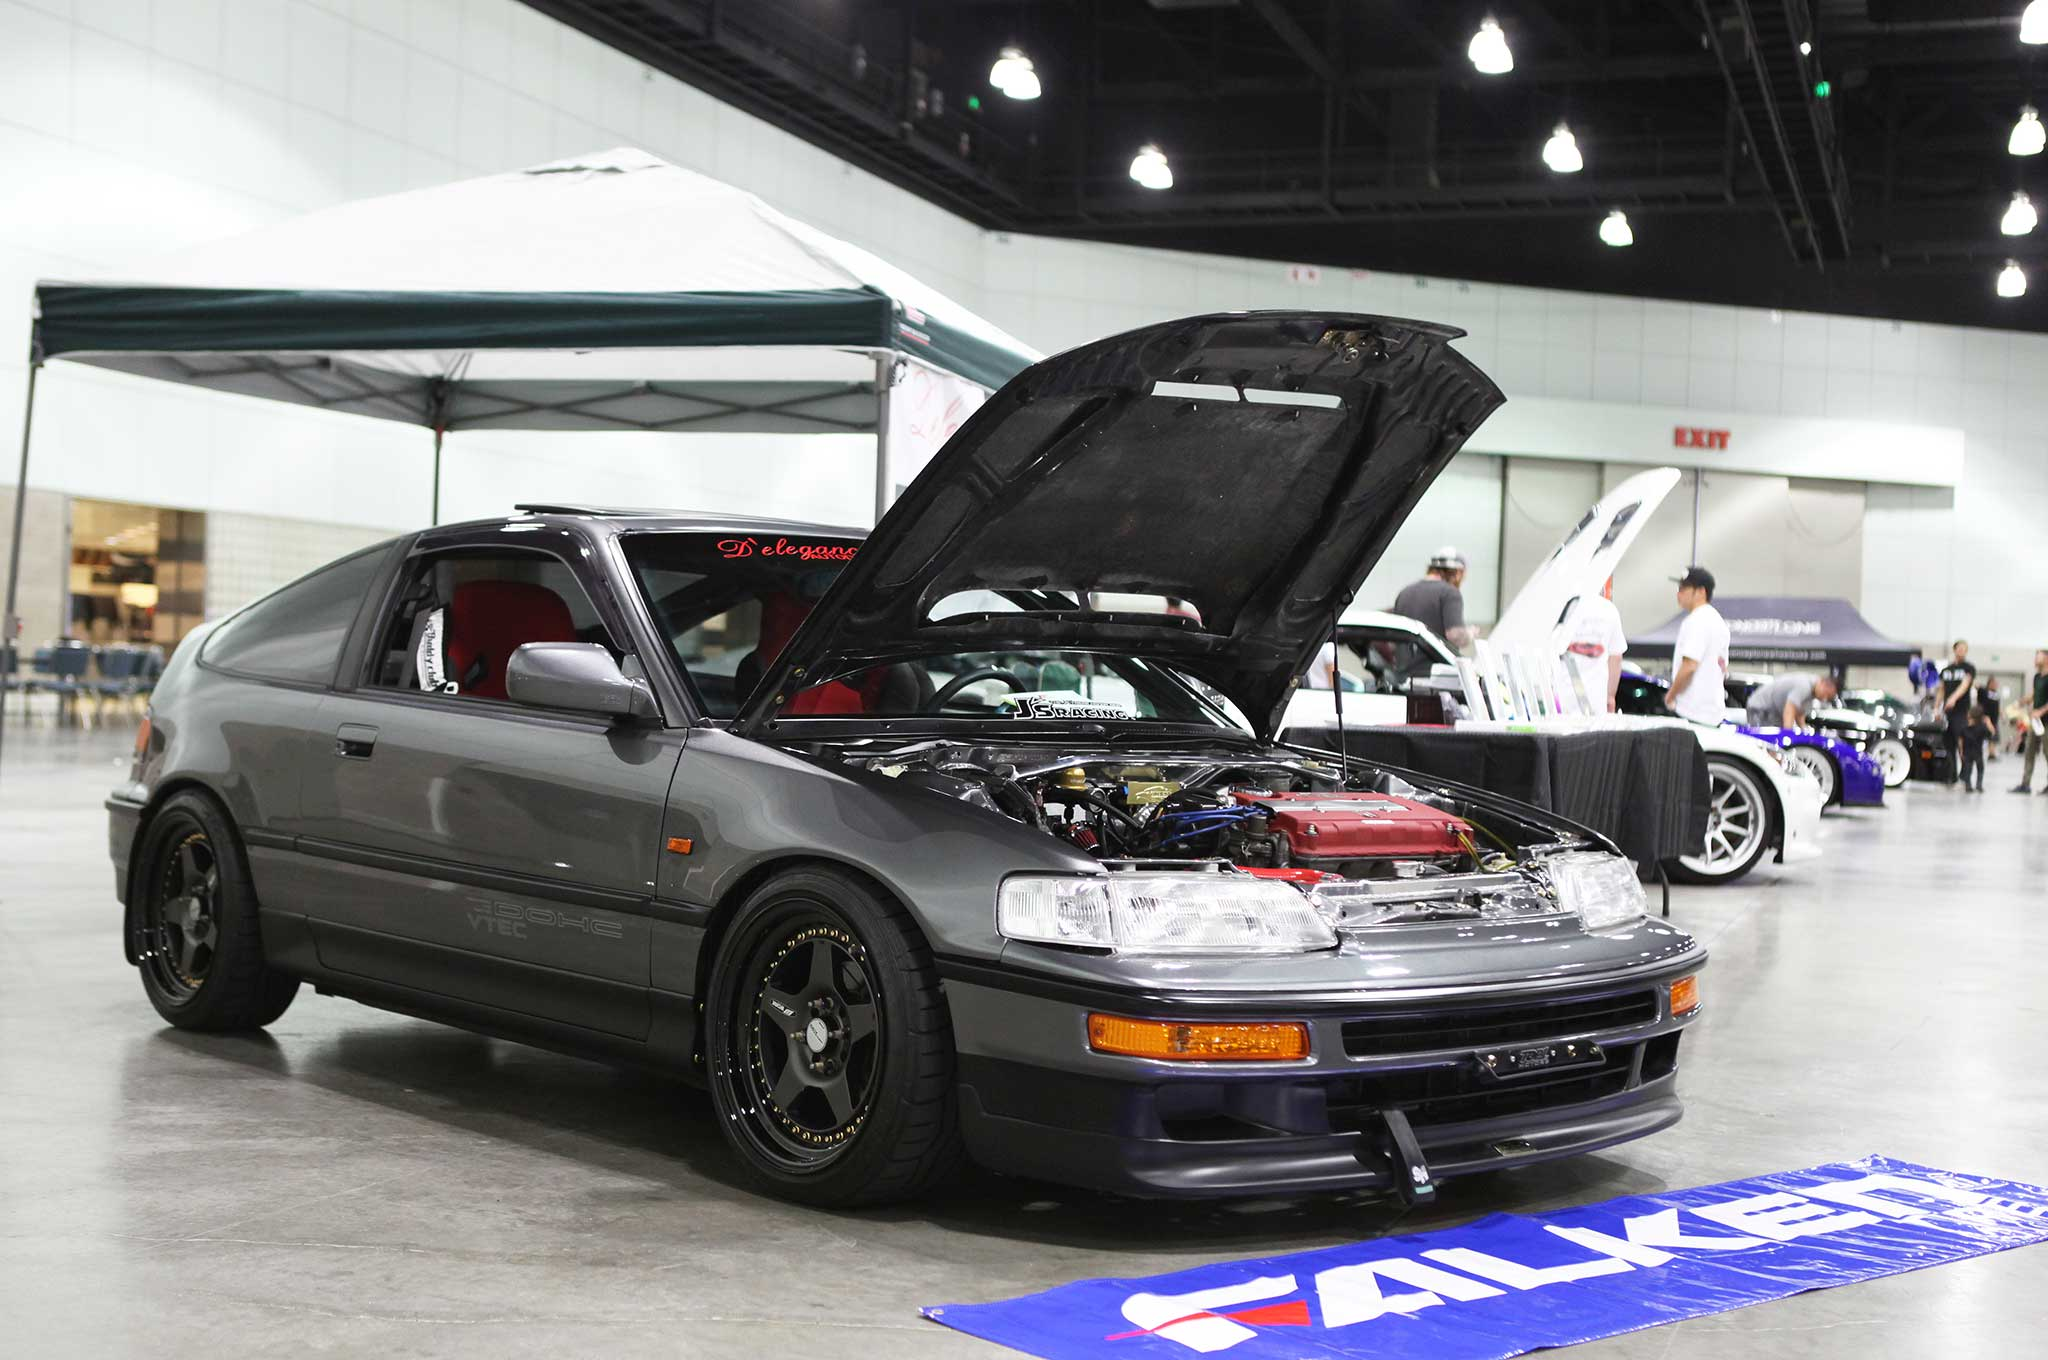 Top 9 Hondas From Autocon La 2016 Honda Crx Front